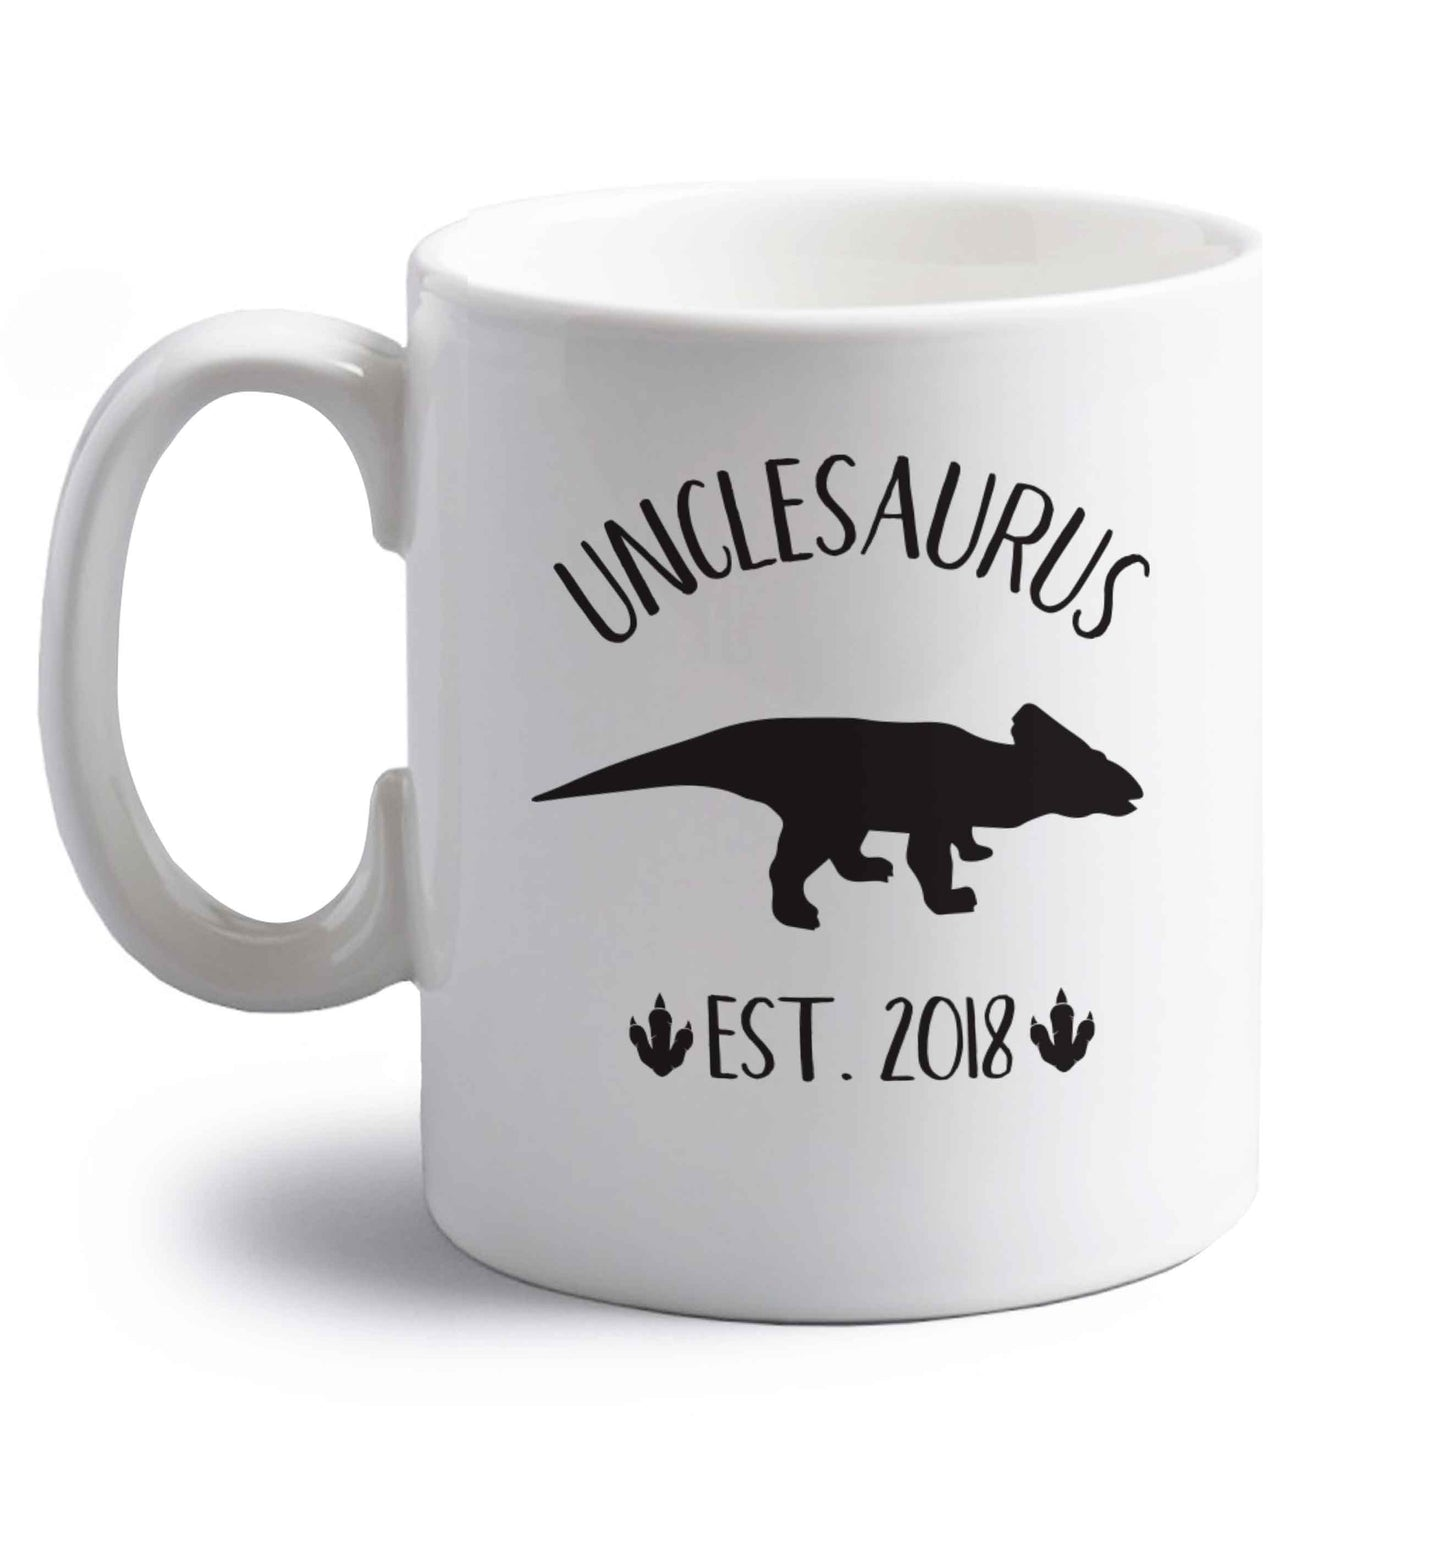 Personalised unclesaurus since (custom date) right handed white ceramic mug